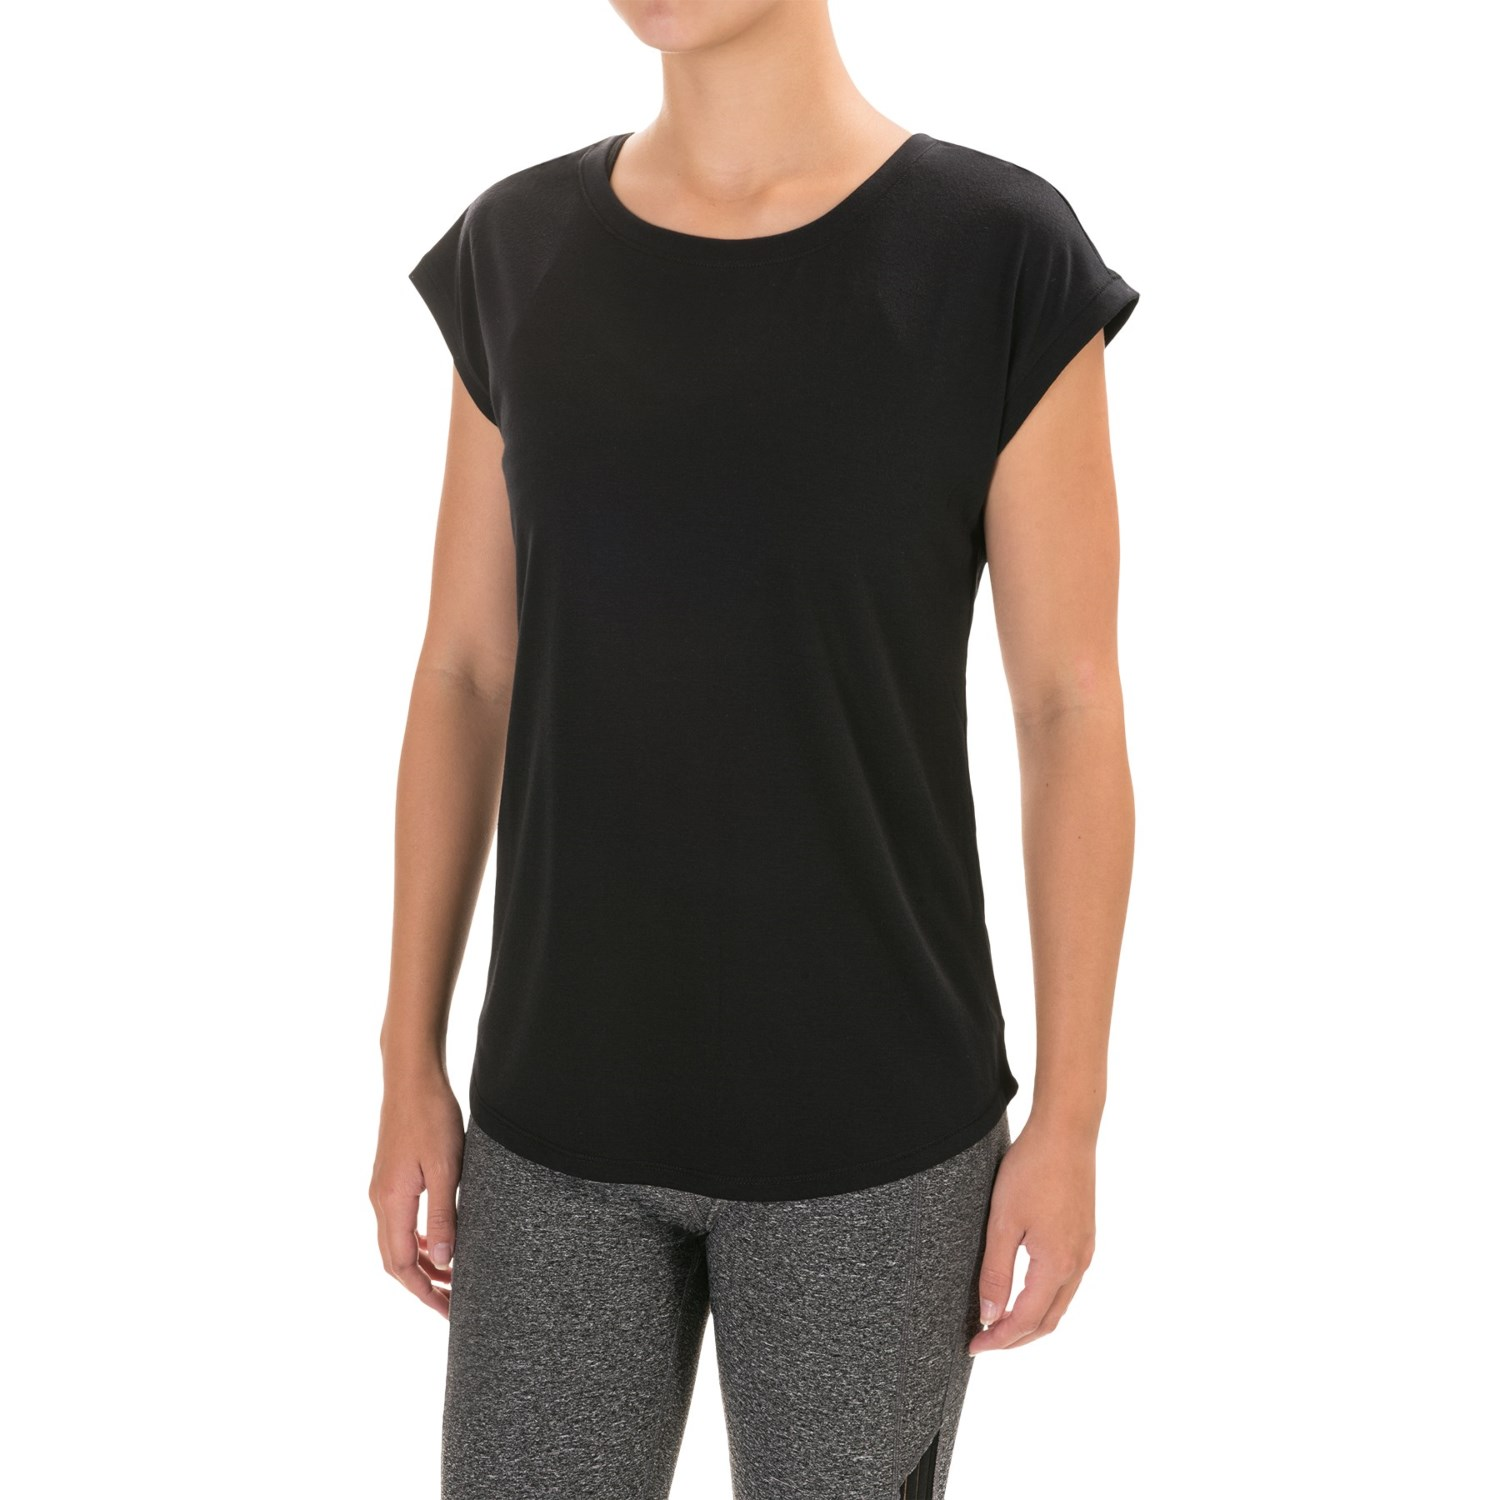 Yogalicious Open-Back Shirt (For Women) - Save 48%